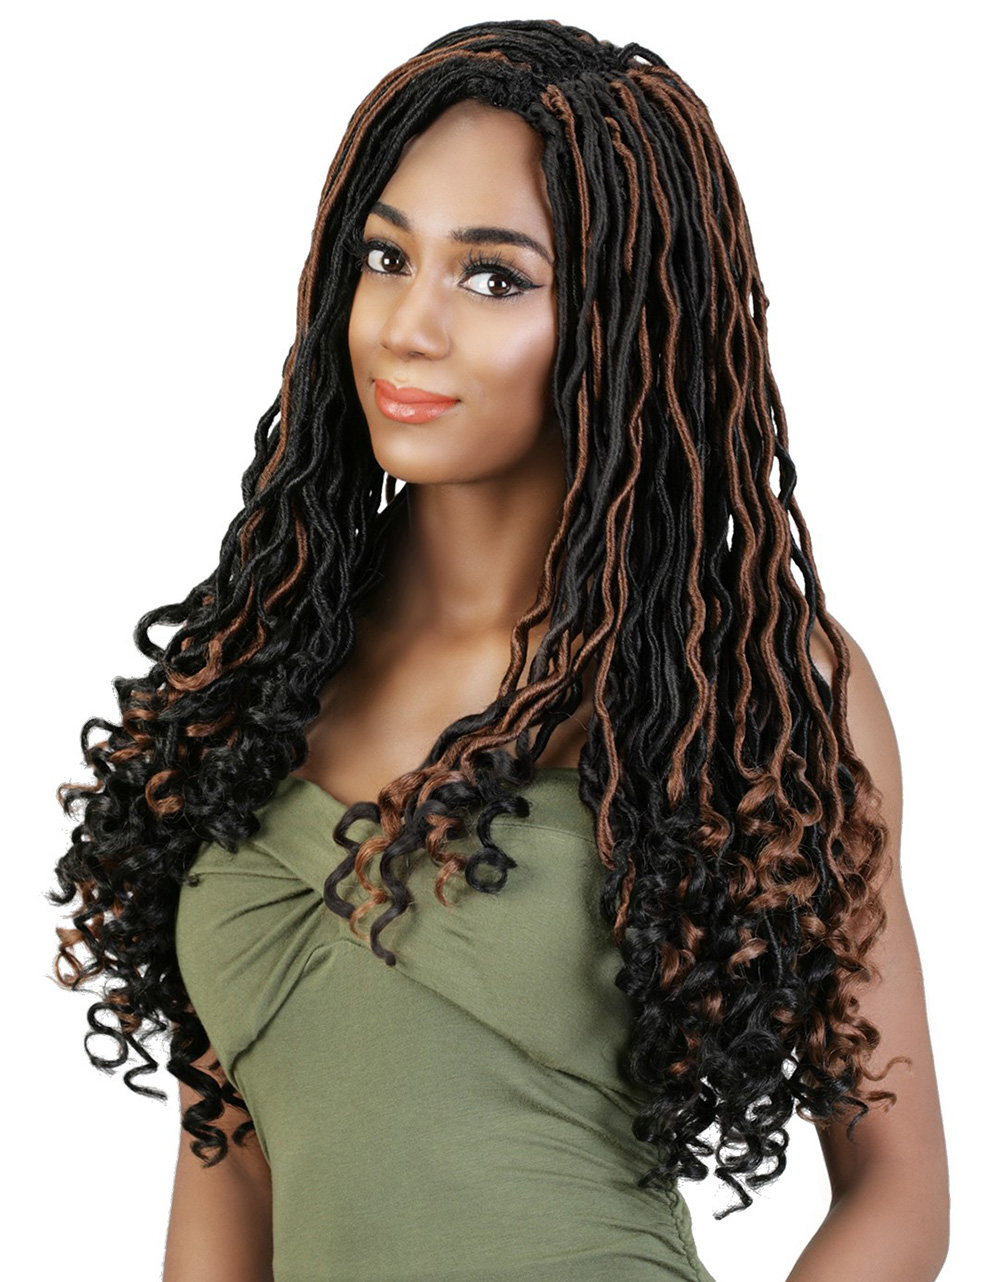 97% of our clients are natural or transitioning.. 86% of our clients have texture 4 hair.. At Harlem Natural Hair, we are committed to creating beautiful styles while .